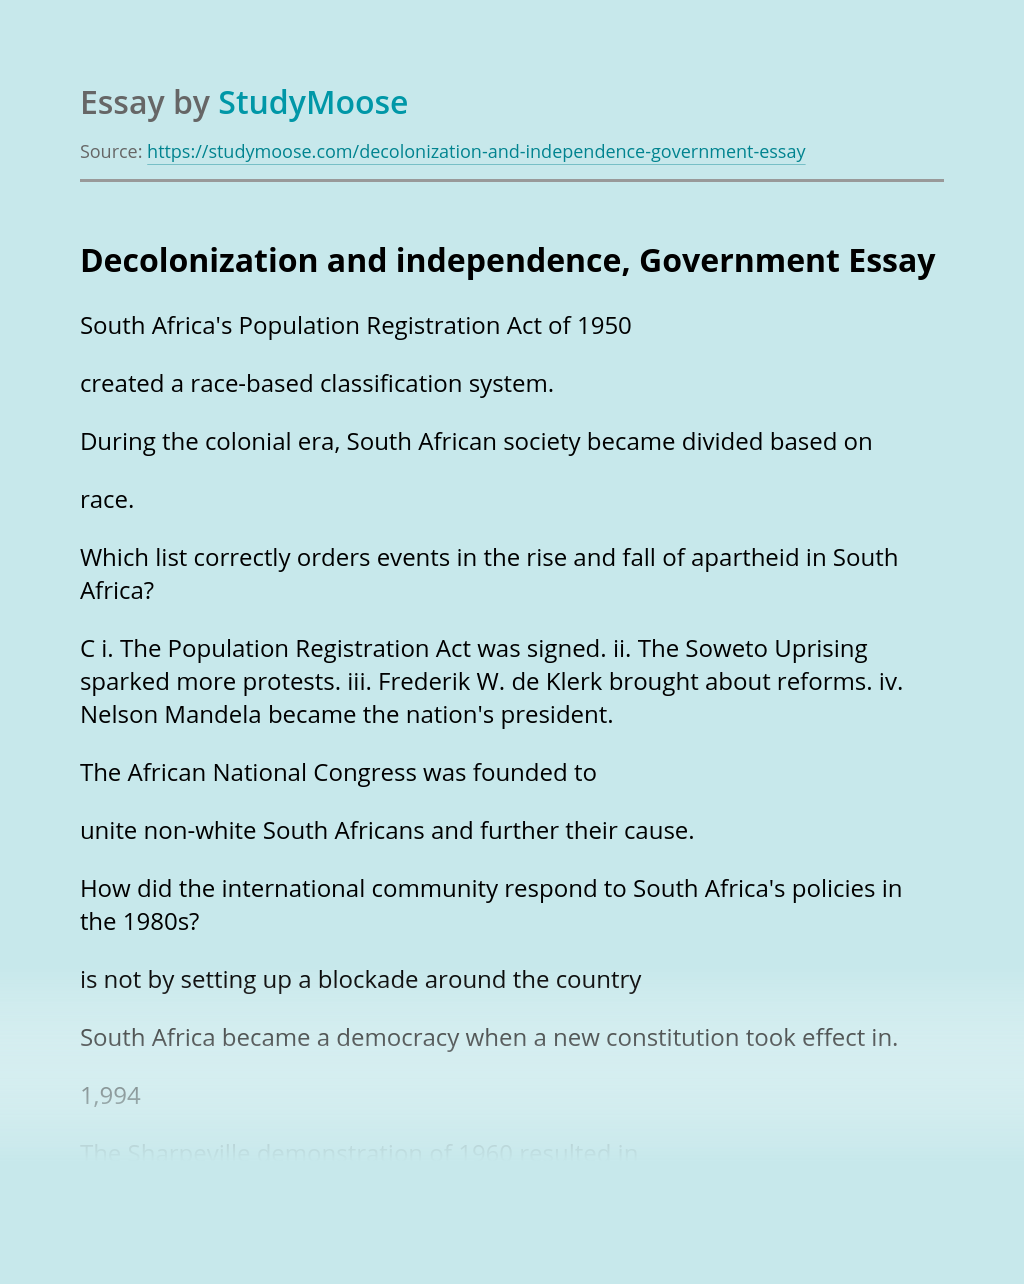 Decolonization and independence, Government